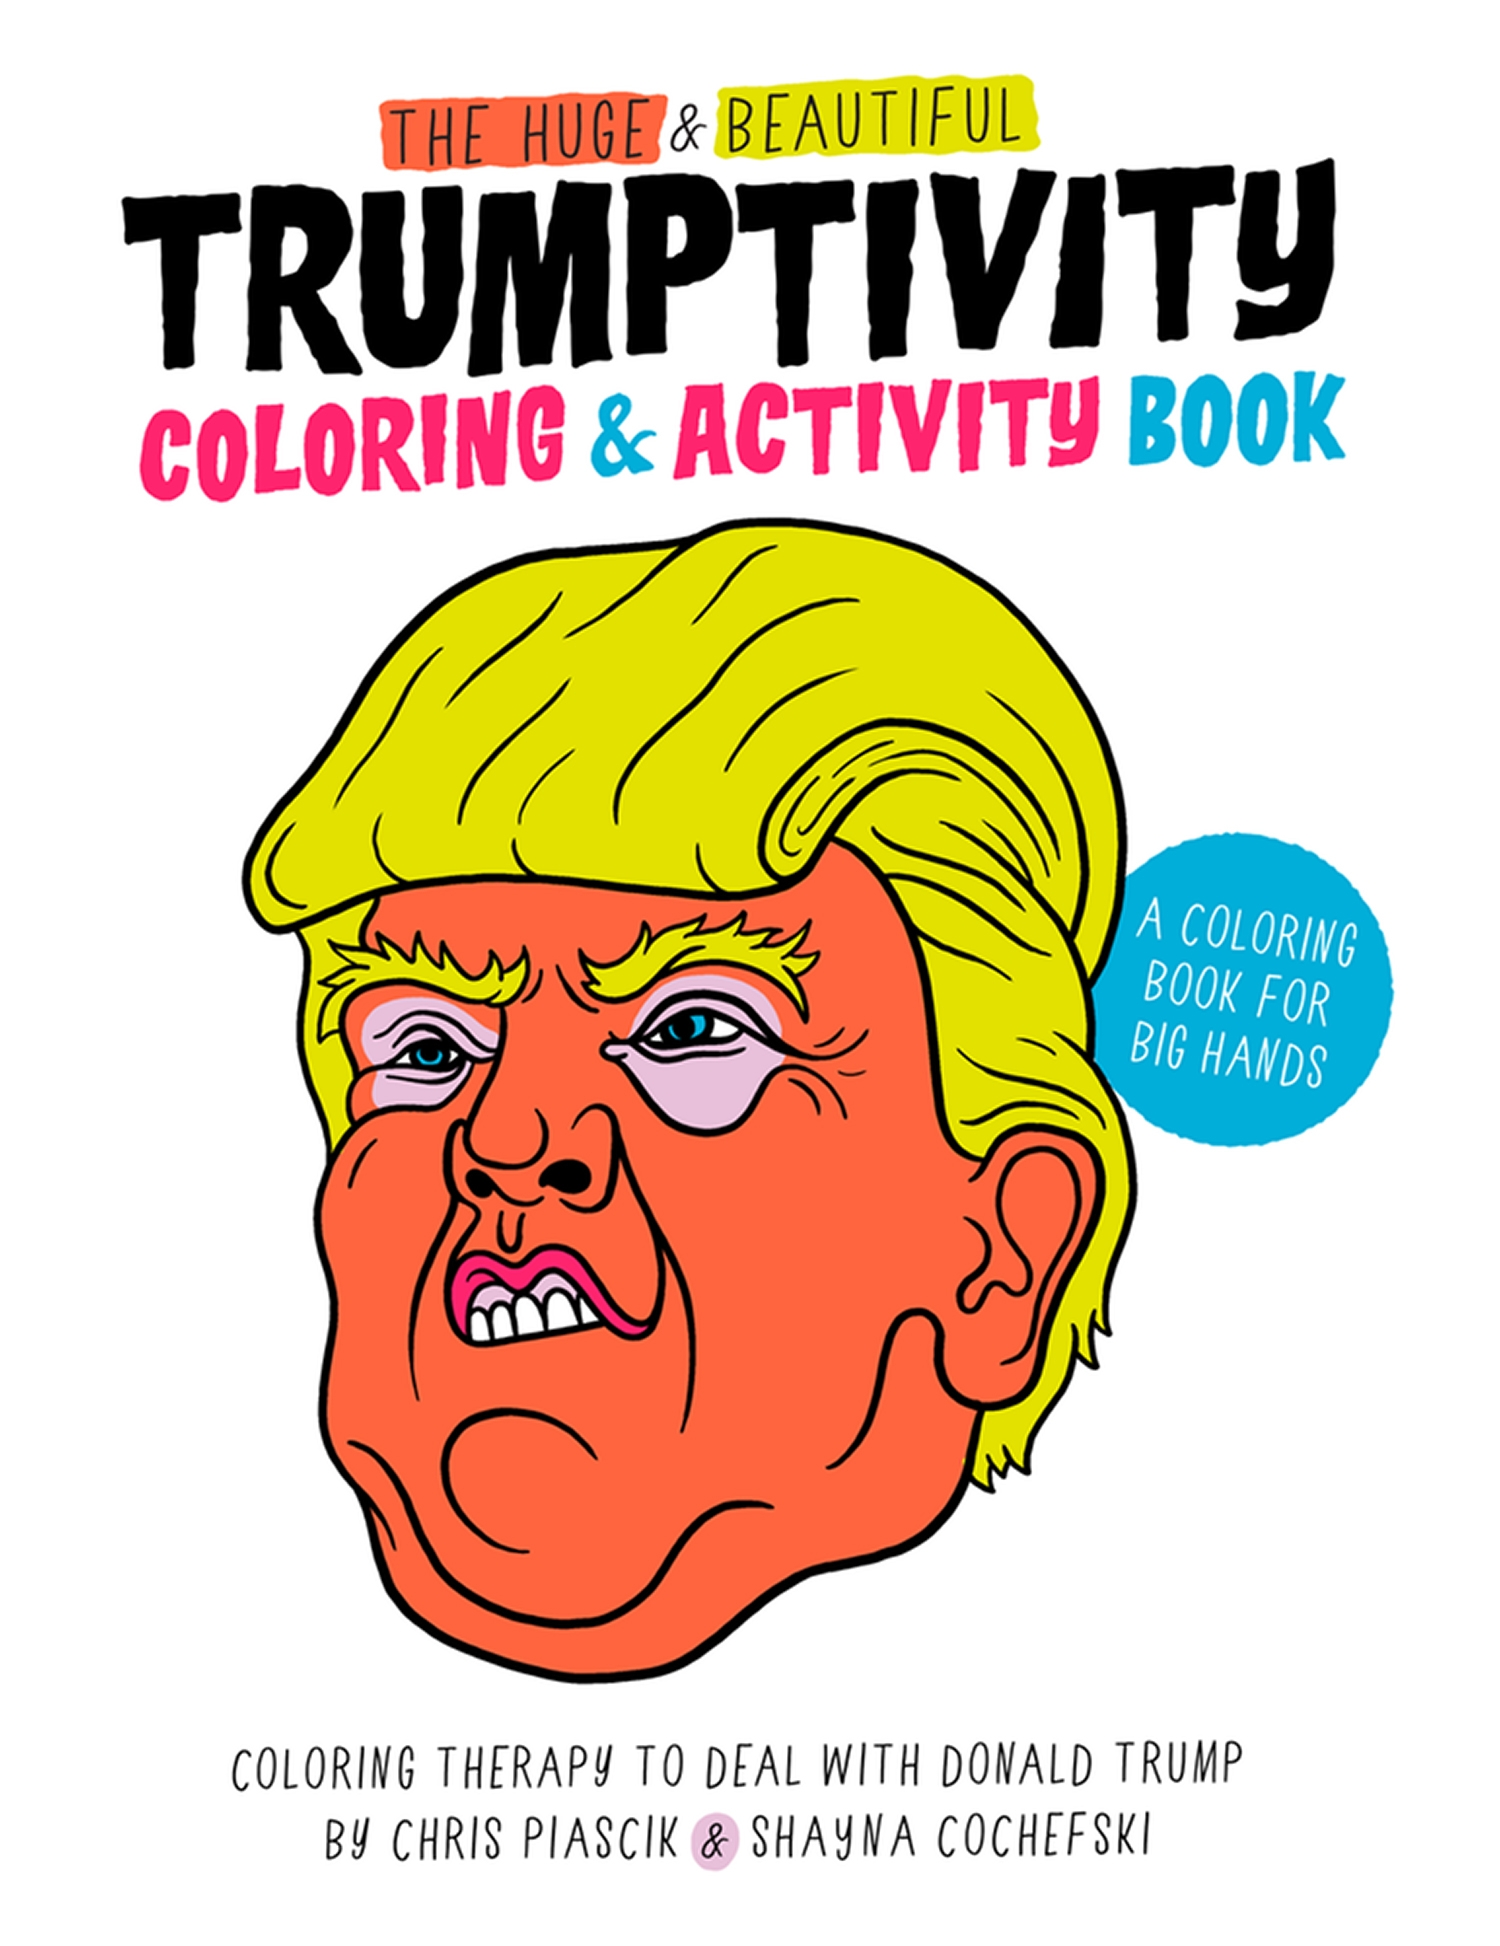 Make a coloring book page with photoshop - The Huge Beautiful Trumptivity Coloring Activity Book